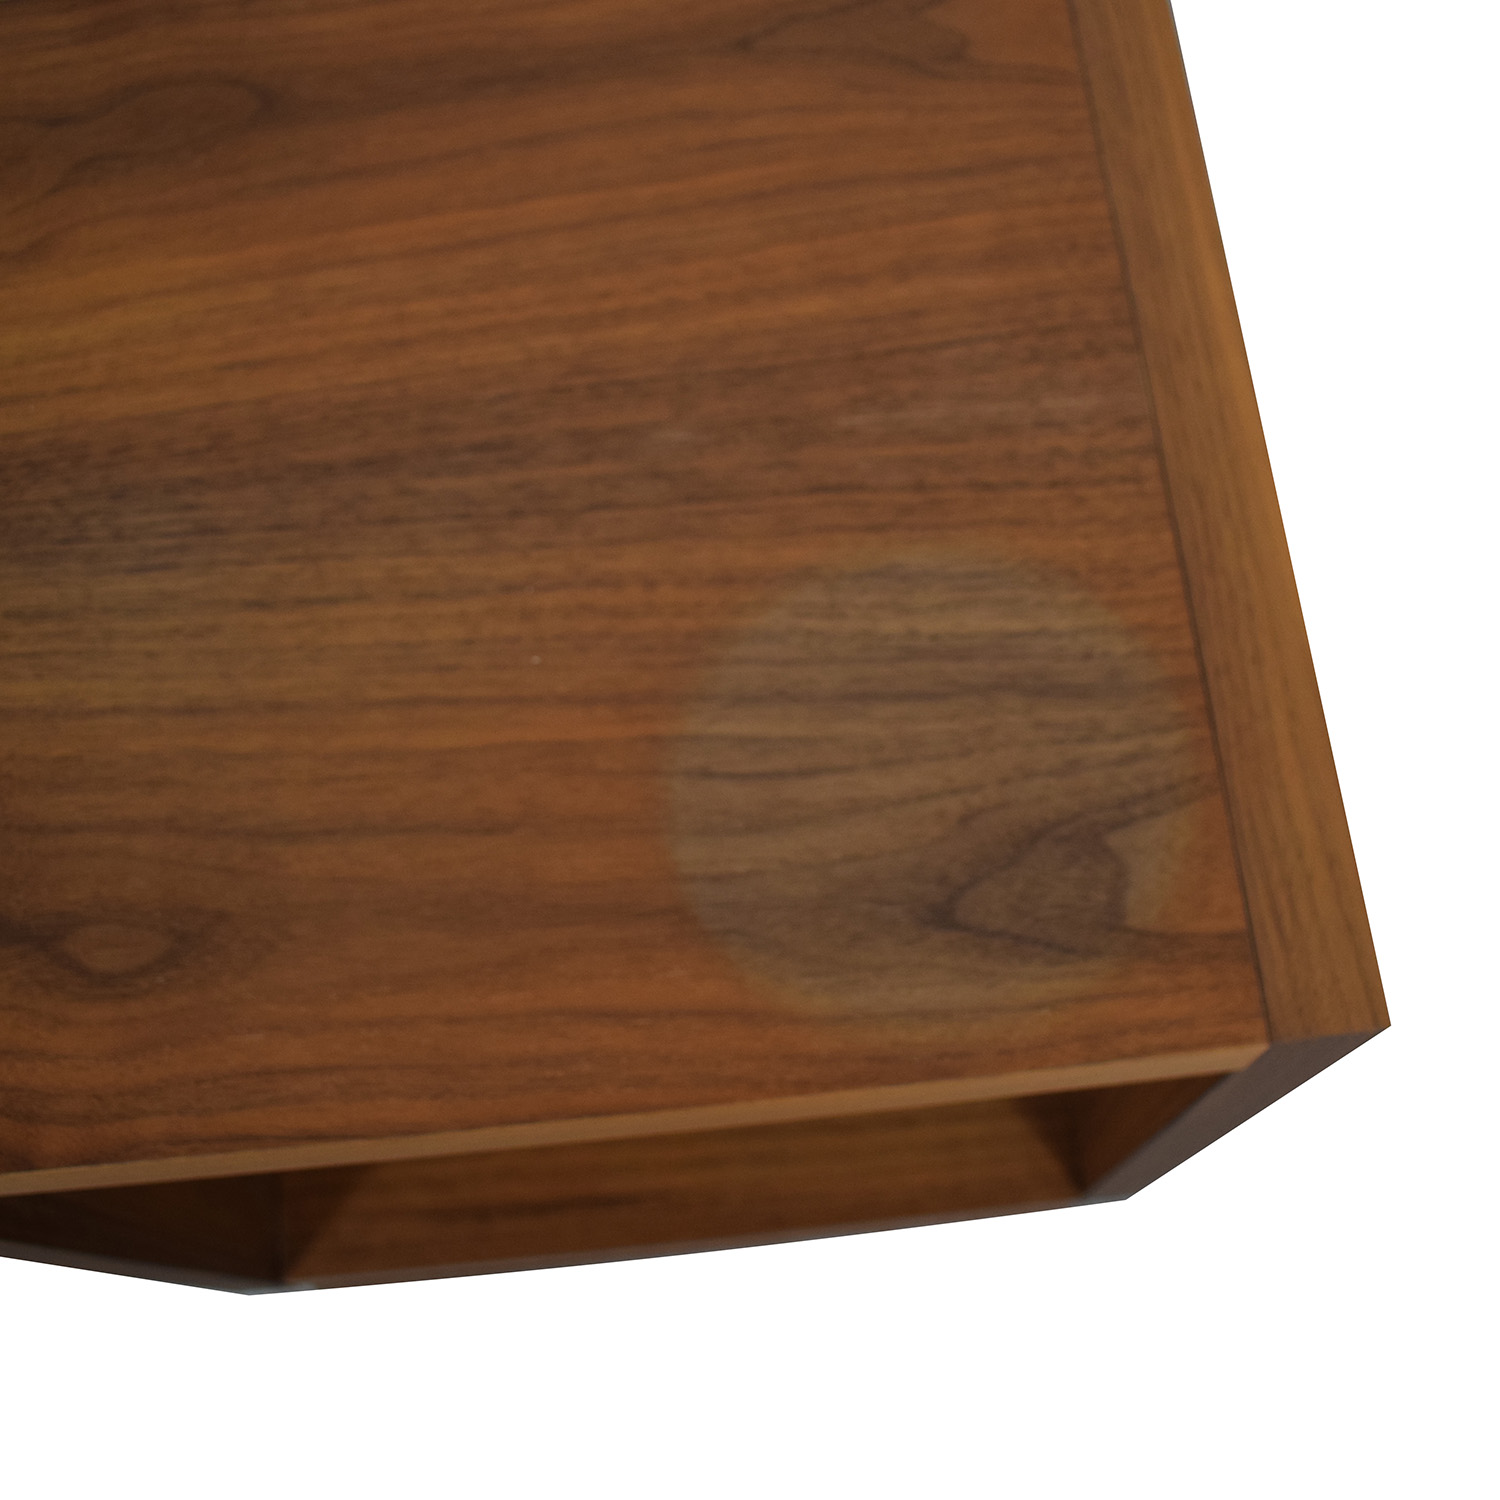 Walnut Swivel End Table / End Tables